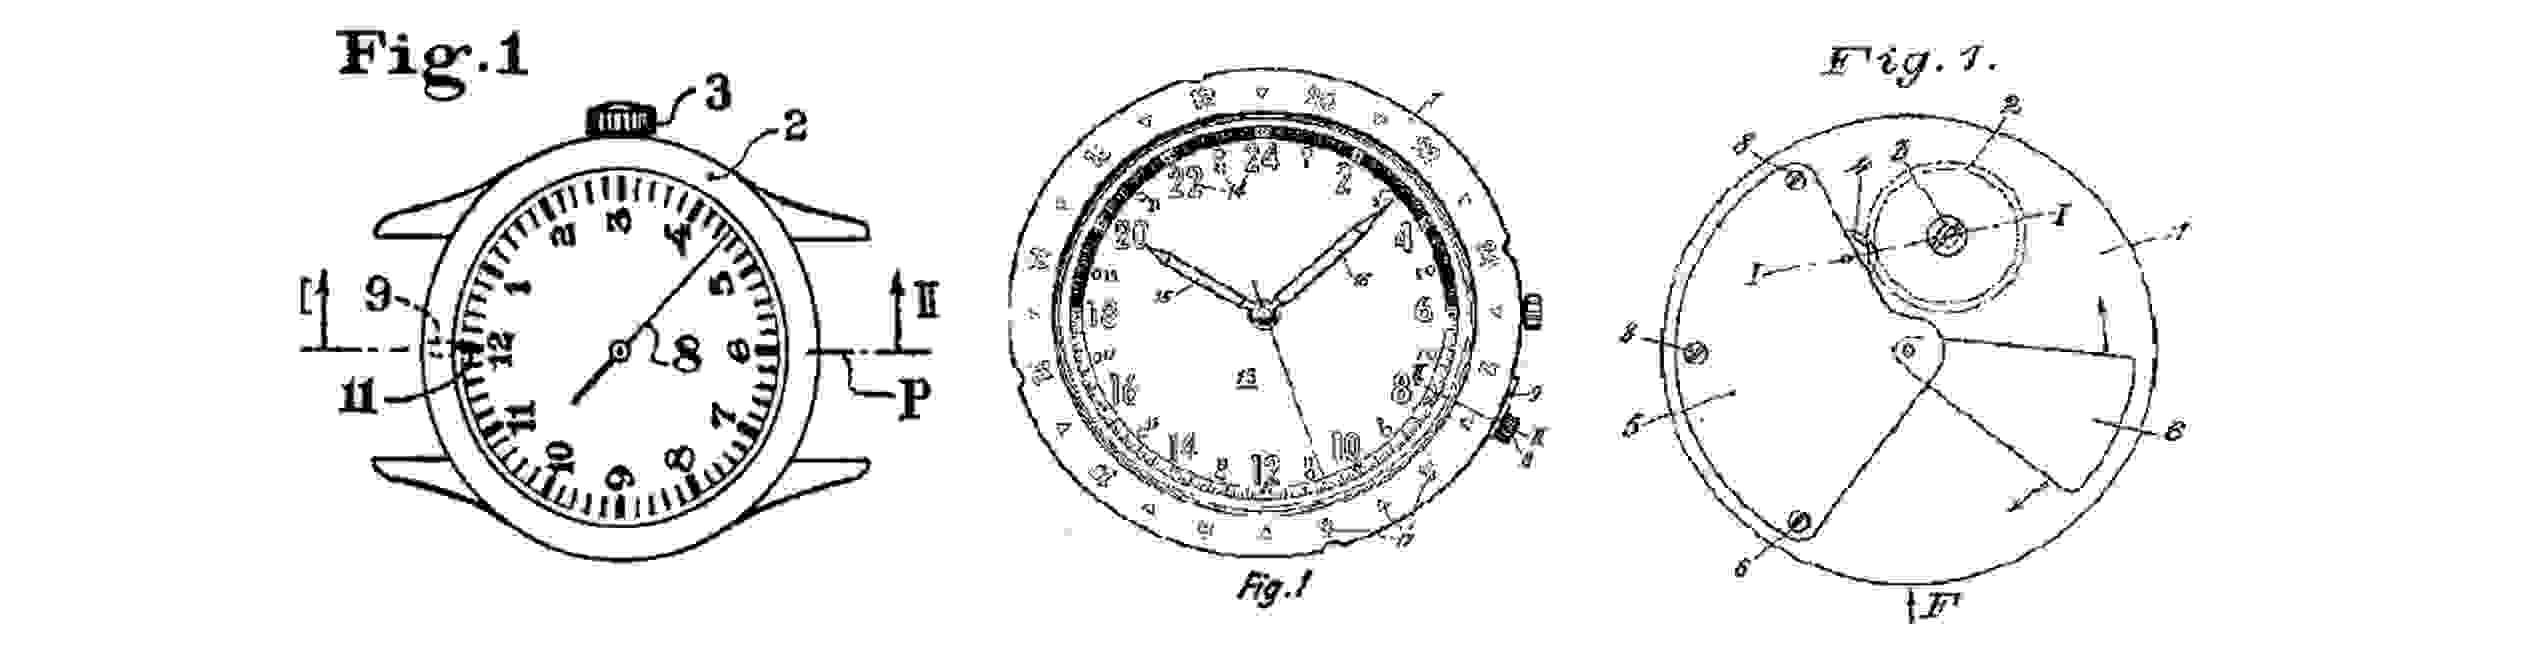 Glycine Patents, Vintage Glycine Watch,Glycintennial